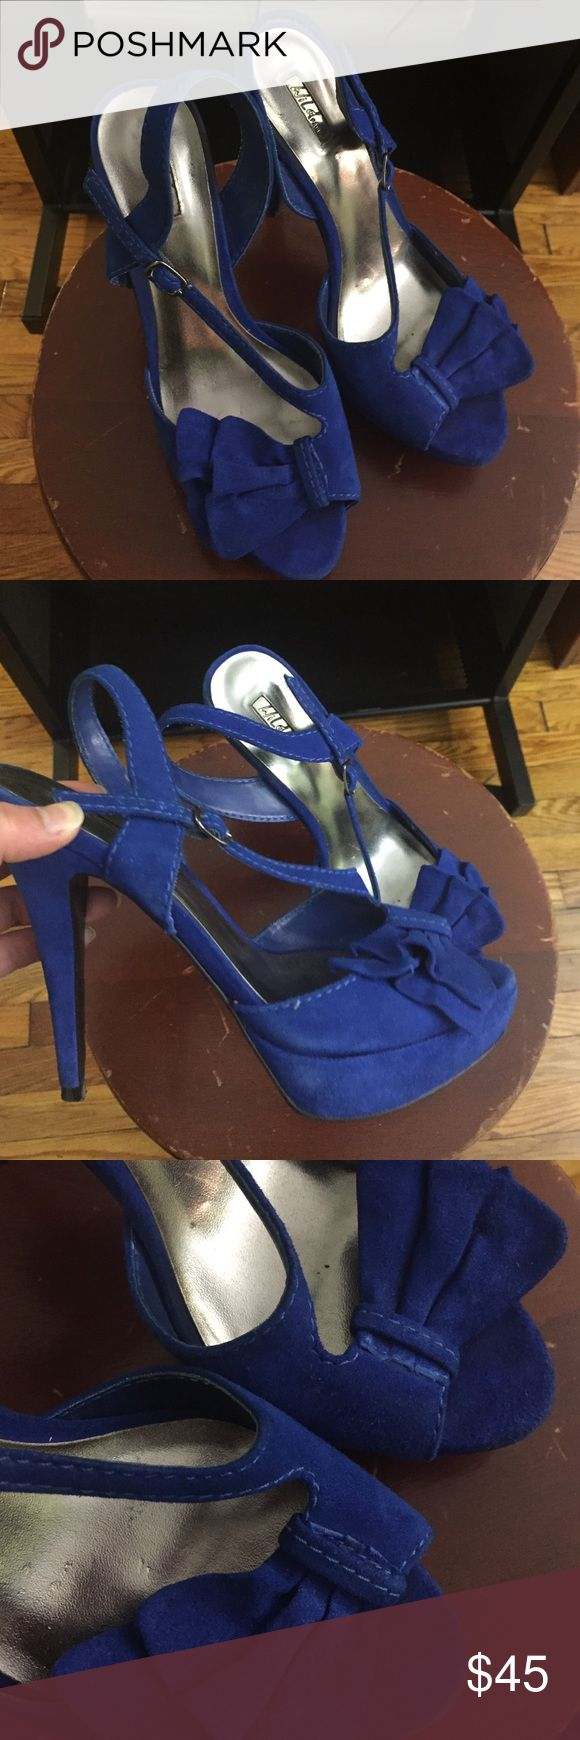 Wild pair electric blue high heels Heels to wear out! Wild Pair Shoes Heels